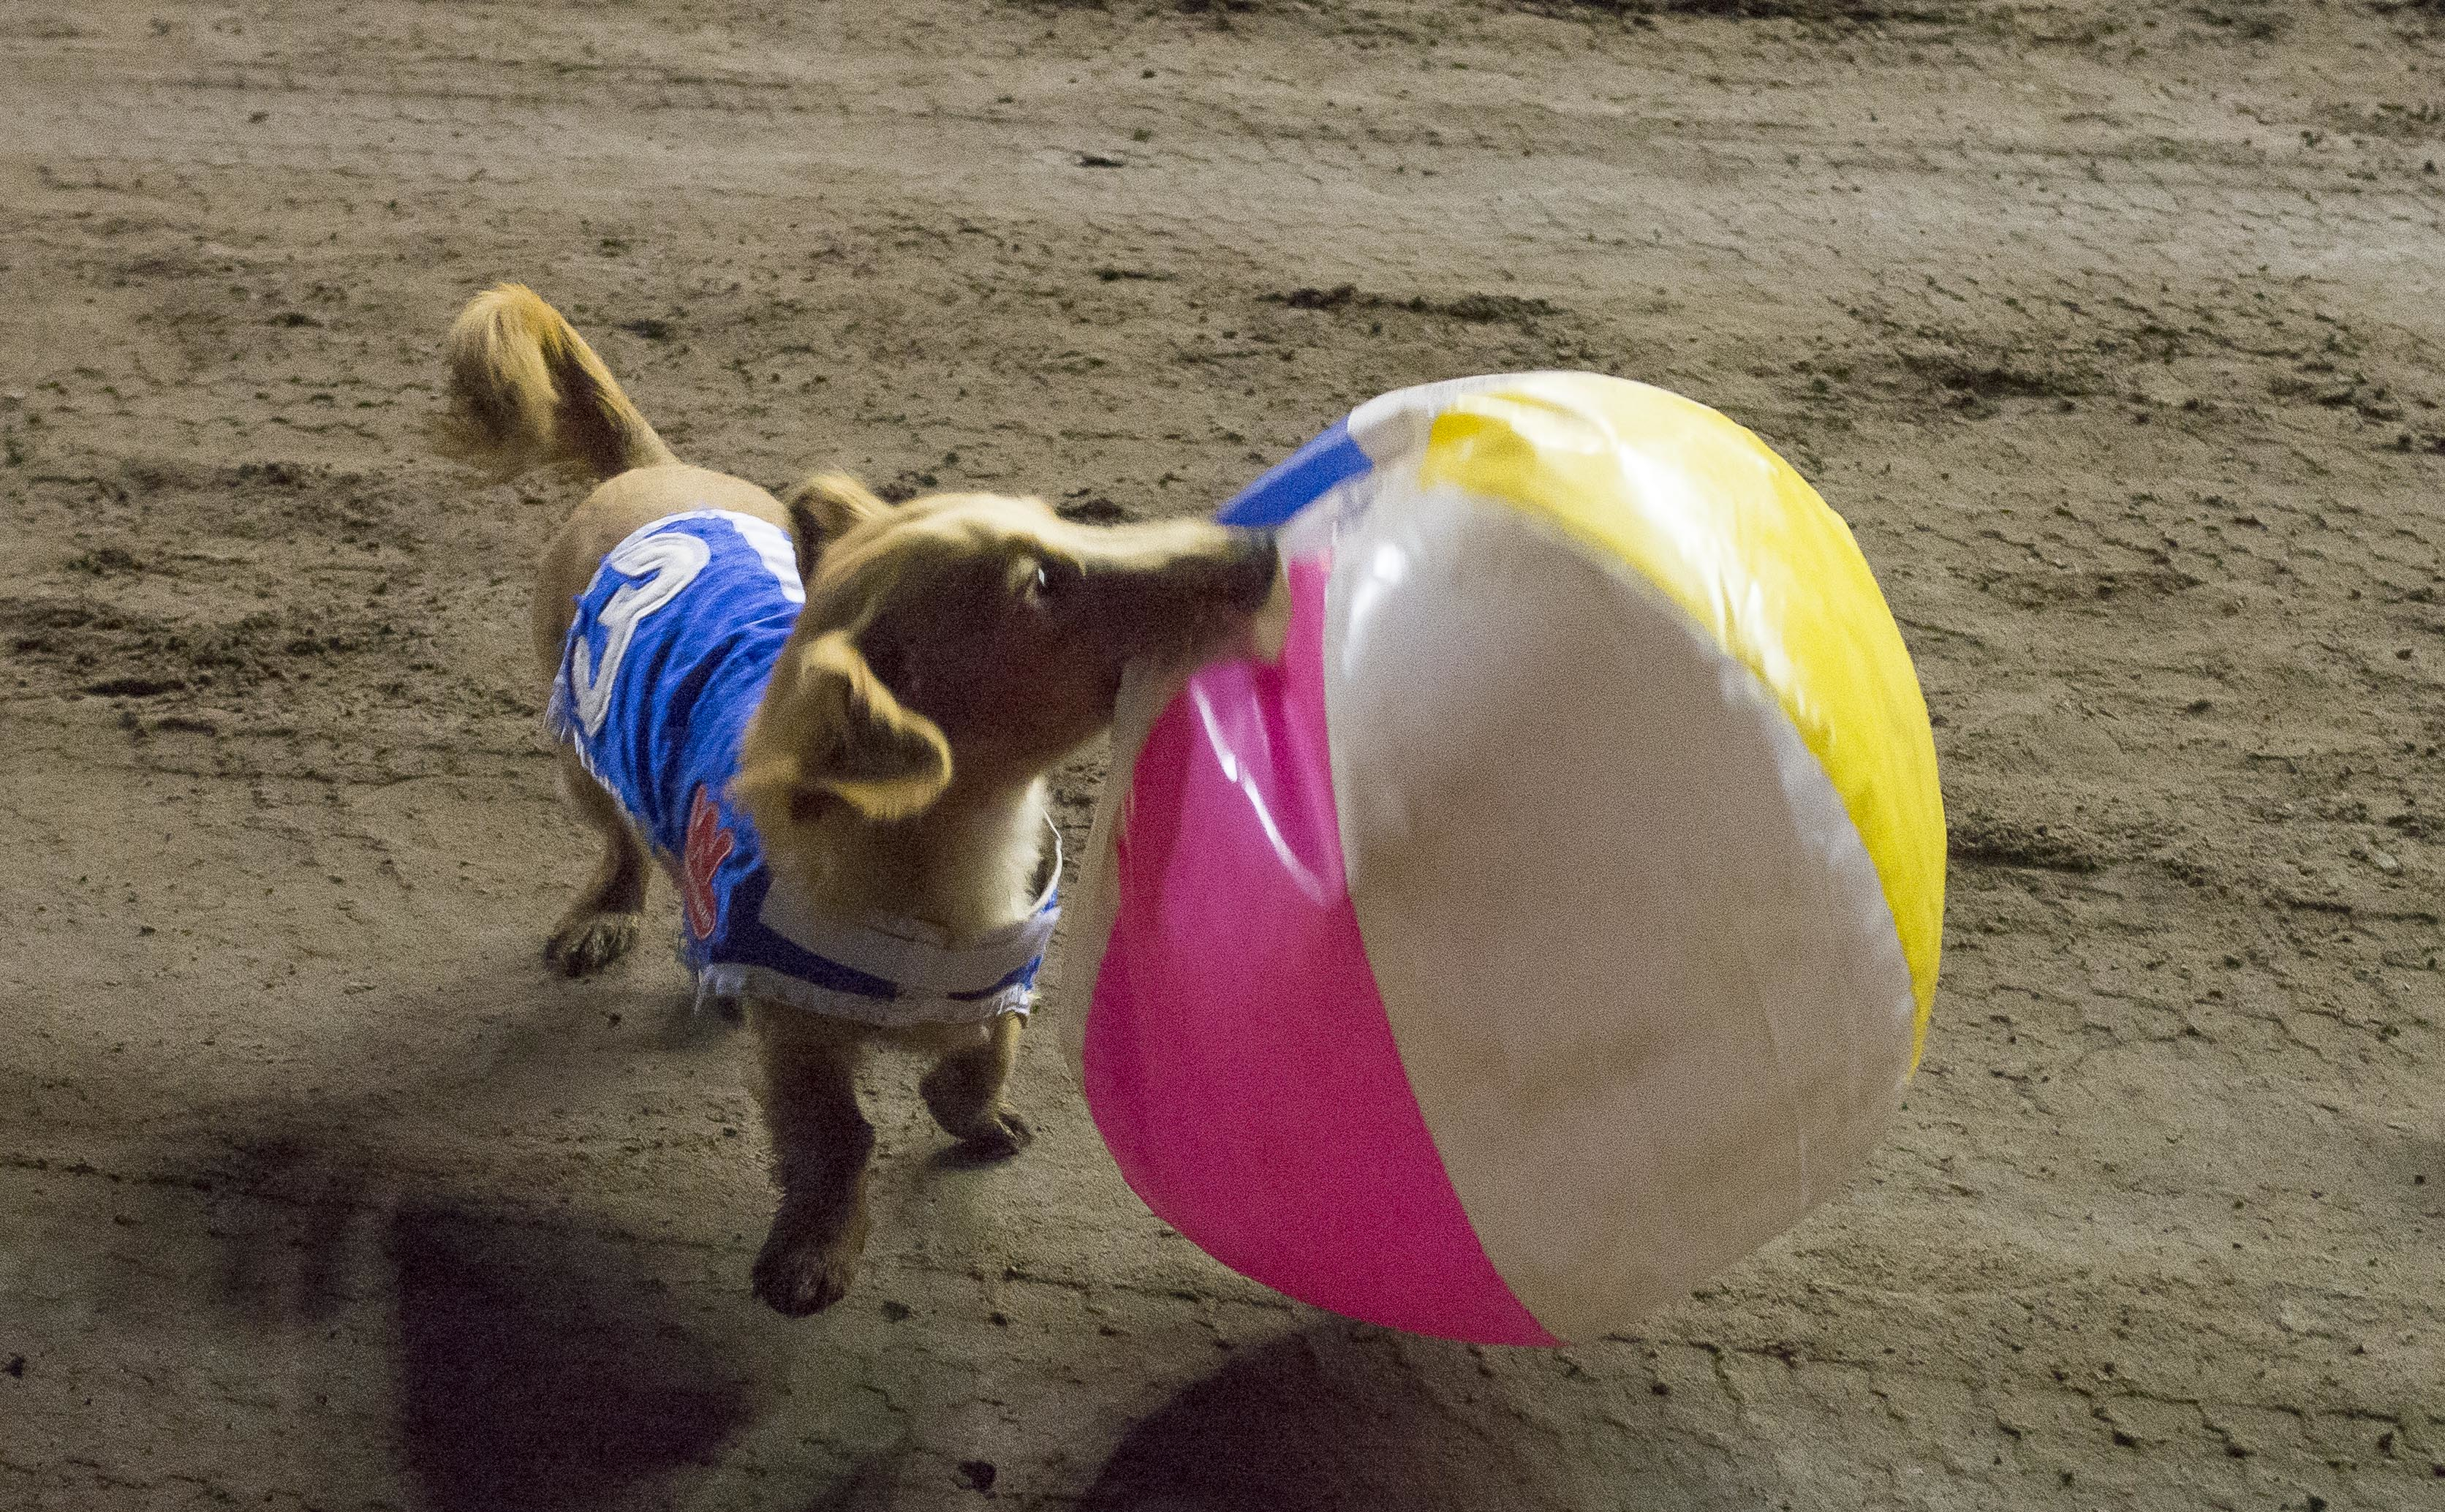 Finn chomps on his beach ball following his win in the 2015 Wienerschnitzel Wiener Nationals at Los Alamitos Race Course. The ball motivates Finn to chase towards the finish line. Photo: Courtesy